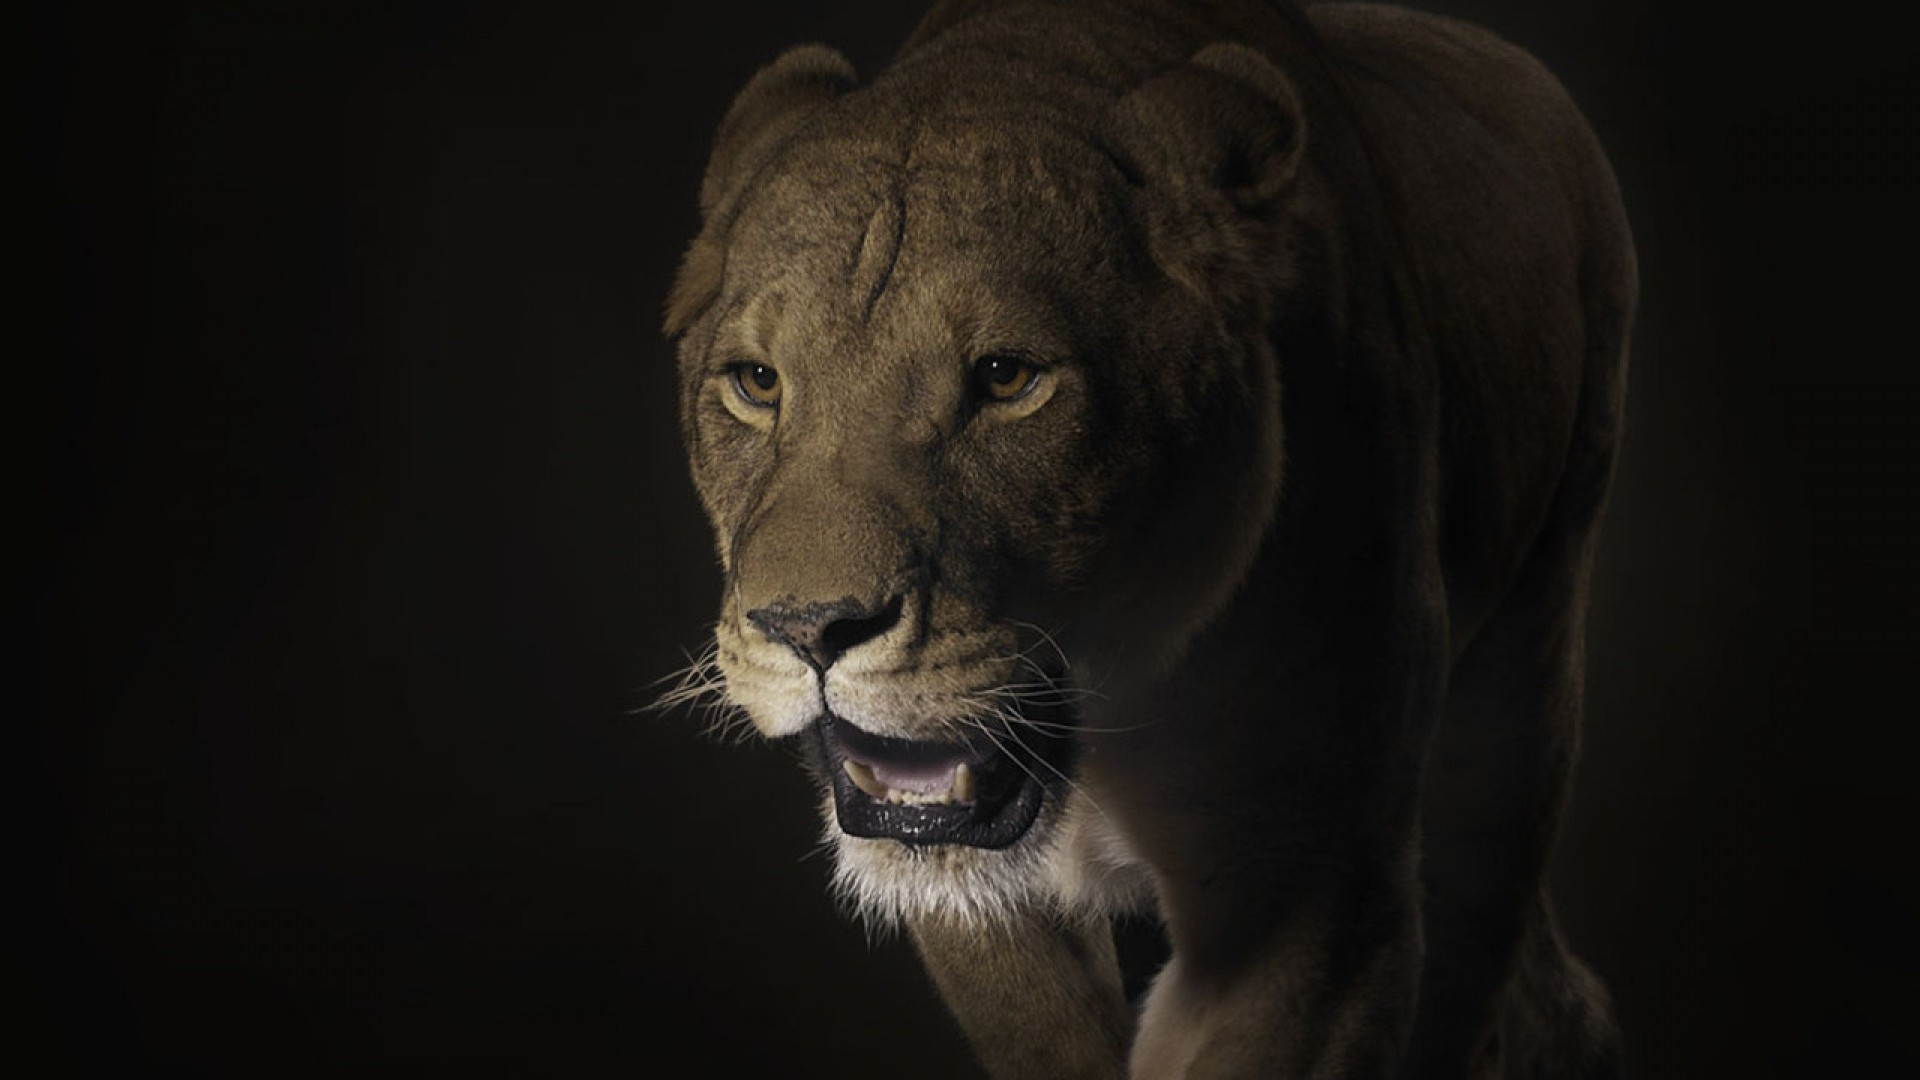 Res: 1920x1080, Get the latest lion, face, shadow news, pictures and videos and learn all  about lion, face, shadow from wallpapers4u.org, your wallpaper news source.